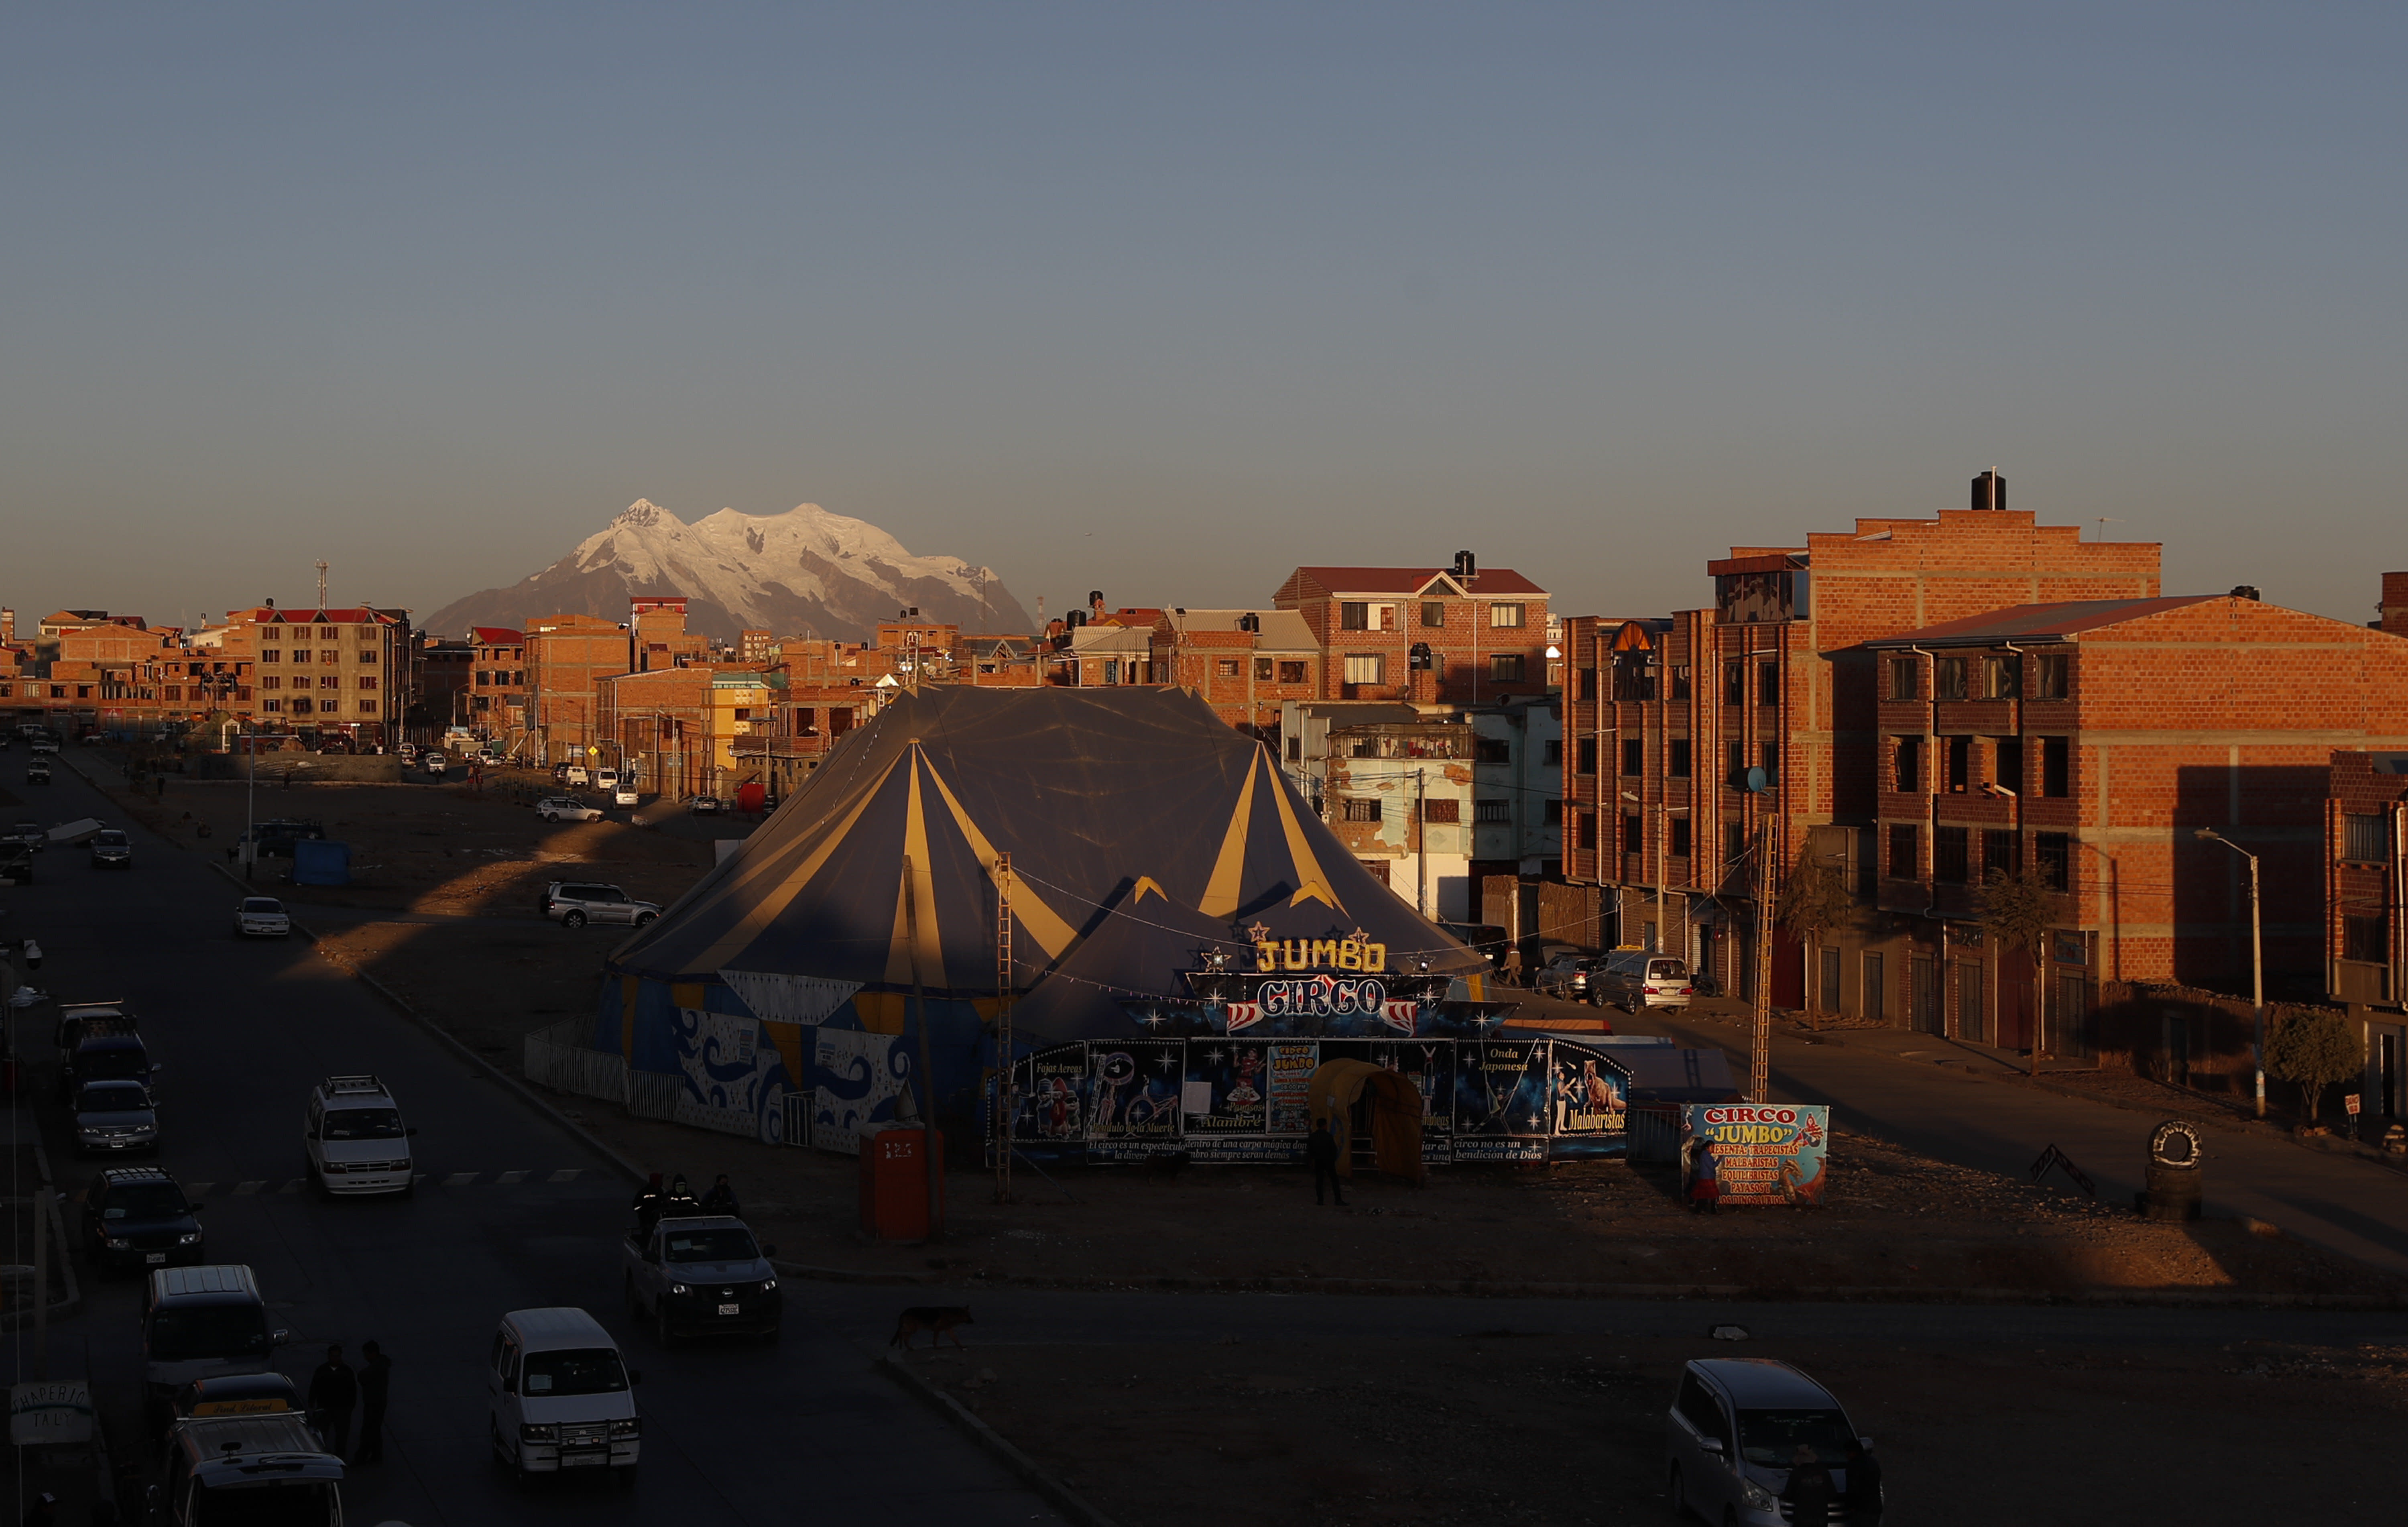 The tent of the Jumbo Circus stands as it enters its fourth month closed due to the COVID-19 lockdown in El Alto, Bolivia, Wednesday, July 1, 2020. Before the lockdown, the circus held one daily performance on weekdays and twice a day on weekends. (AP Photo/Juan Karita)